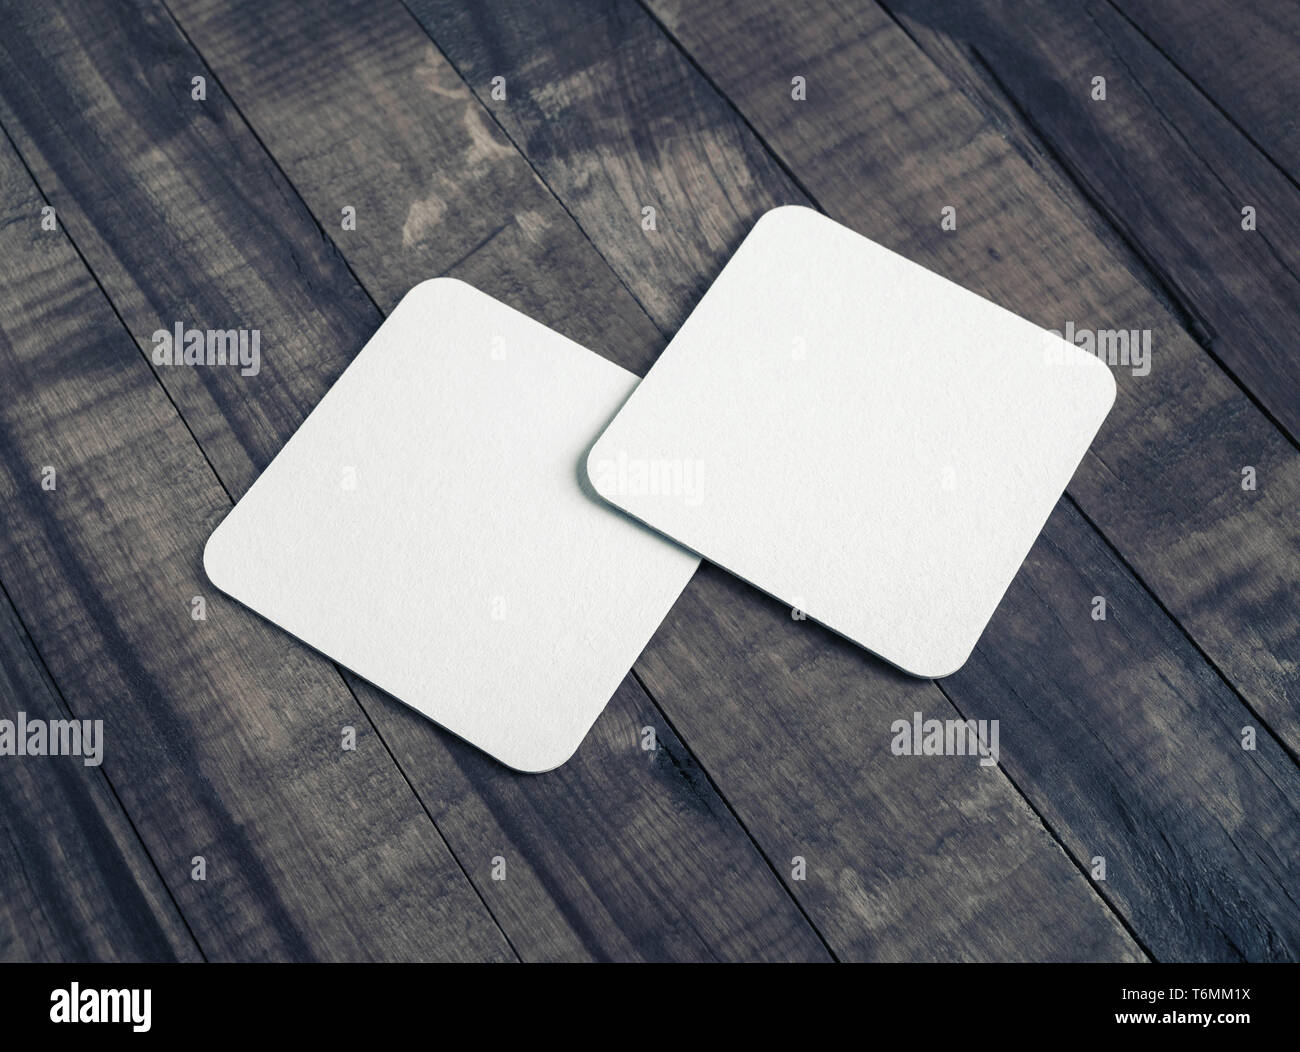 Square beer coasters - Stock Image